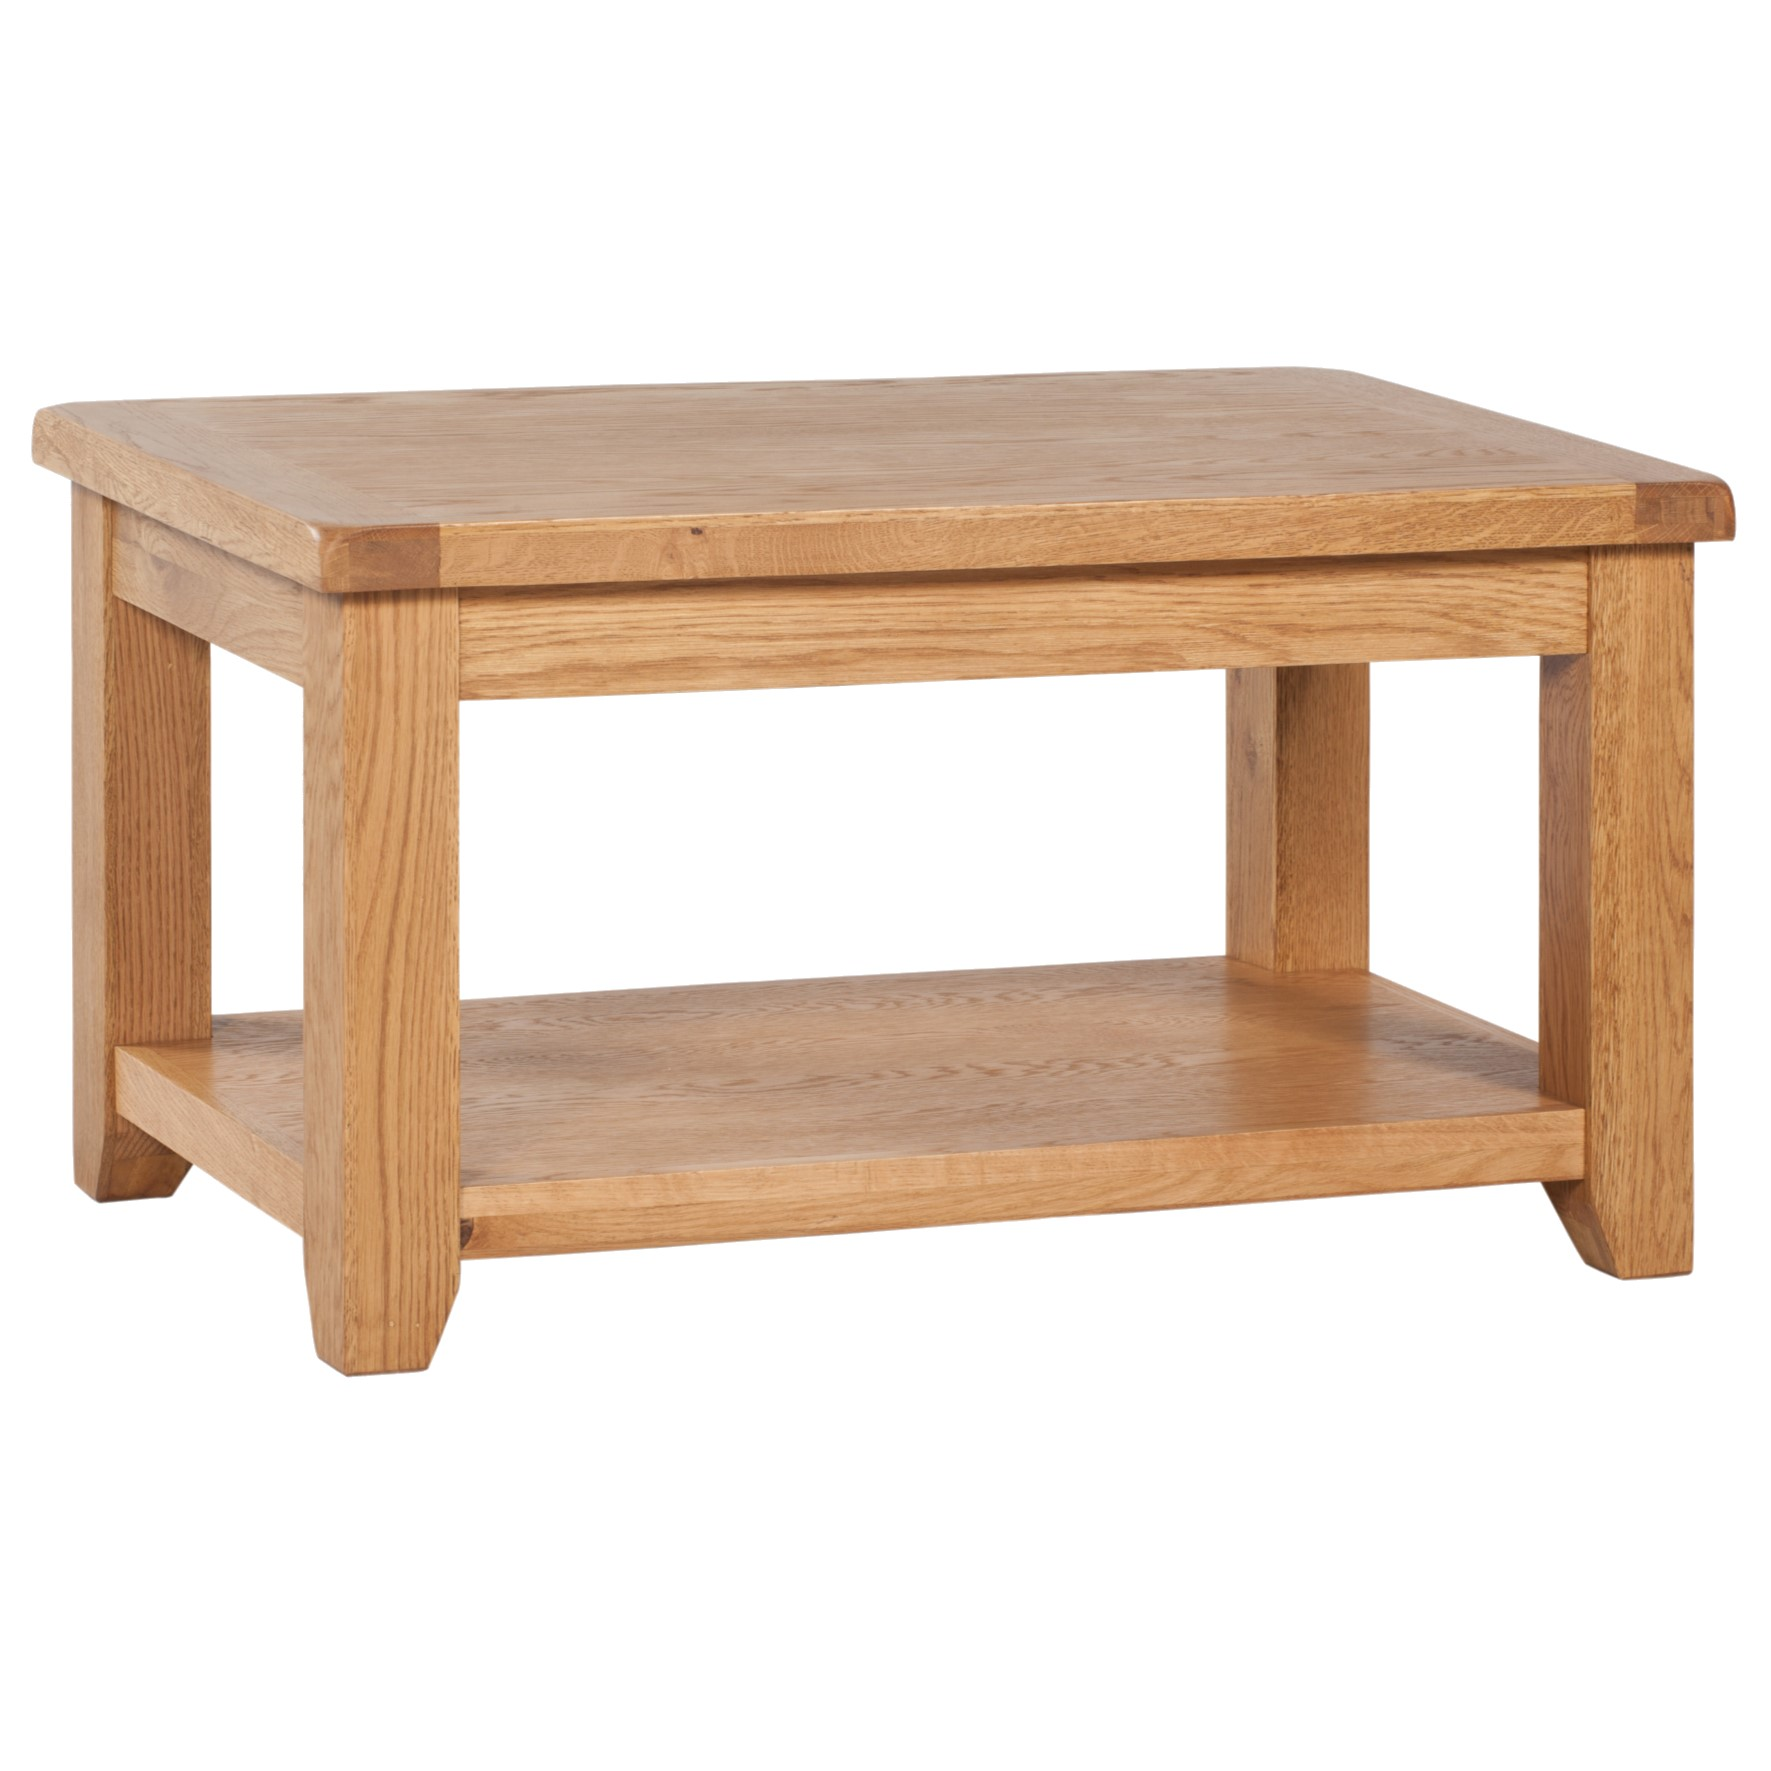 Vaughan - Standard Coffee Table with shelf